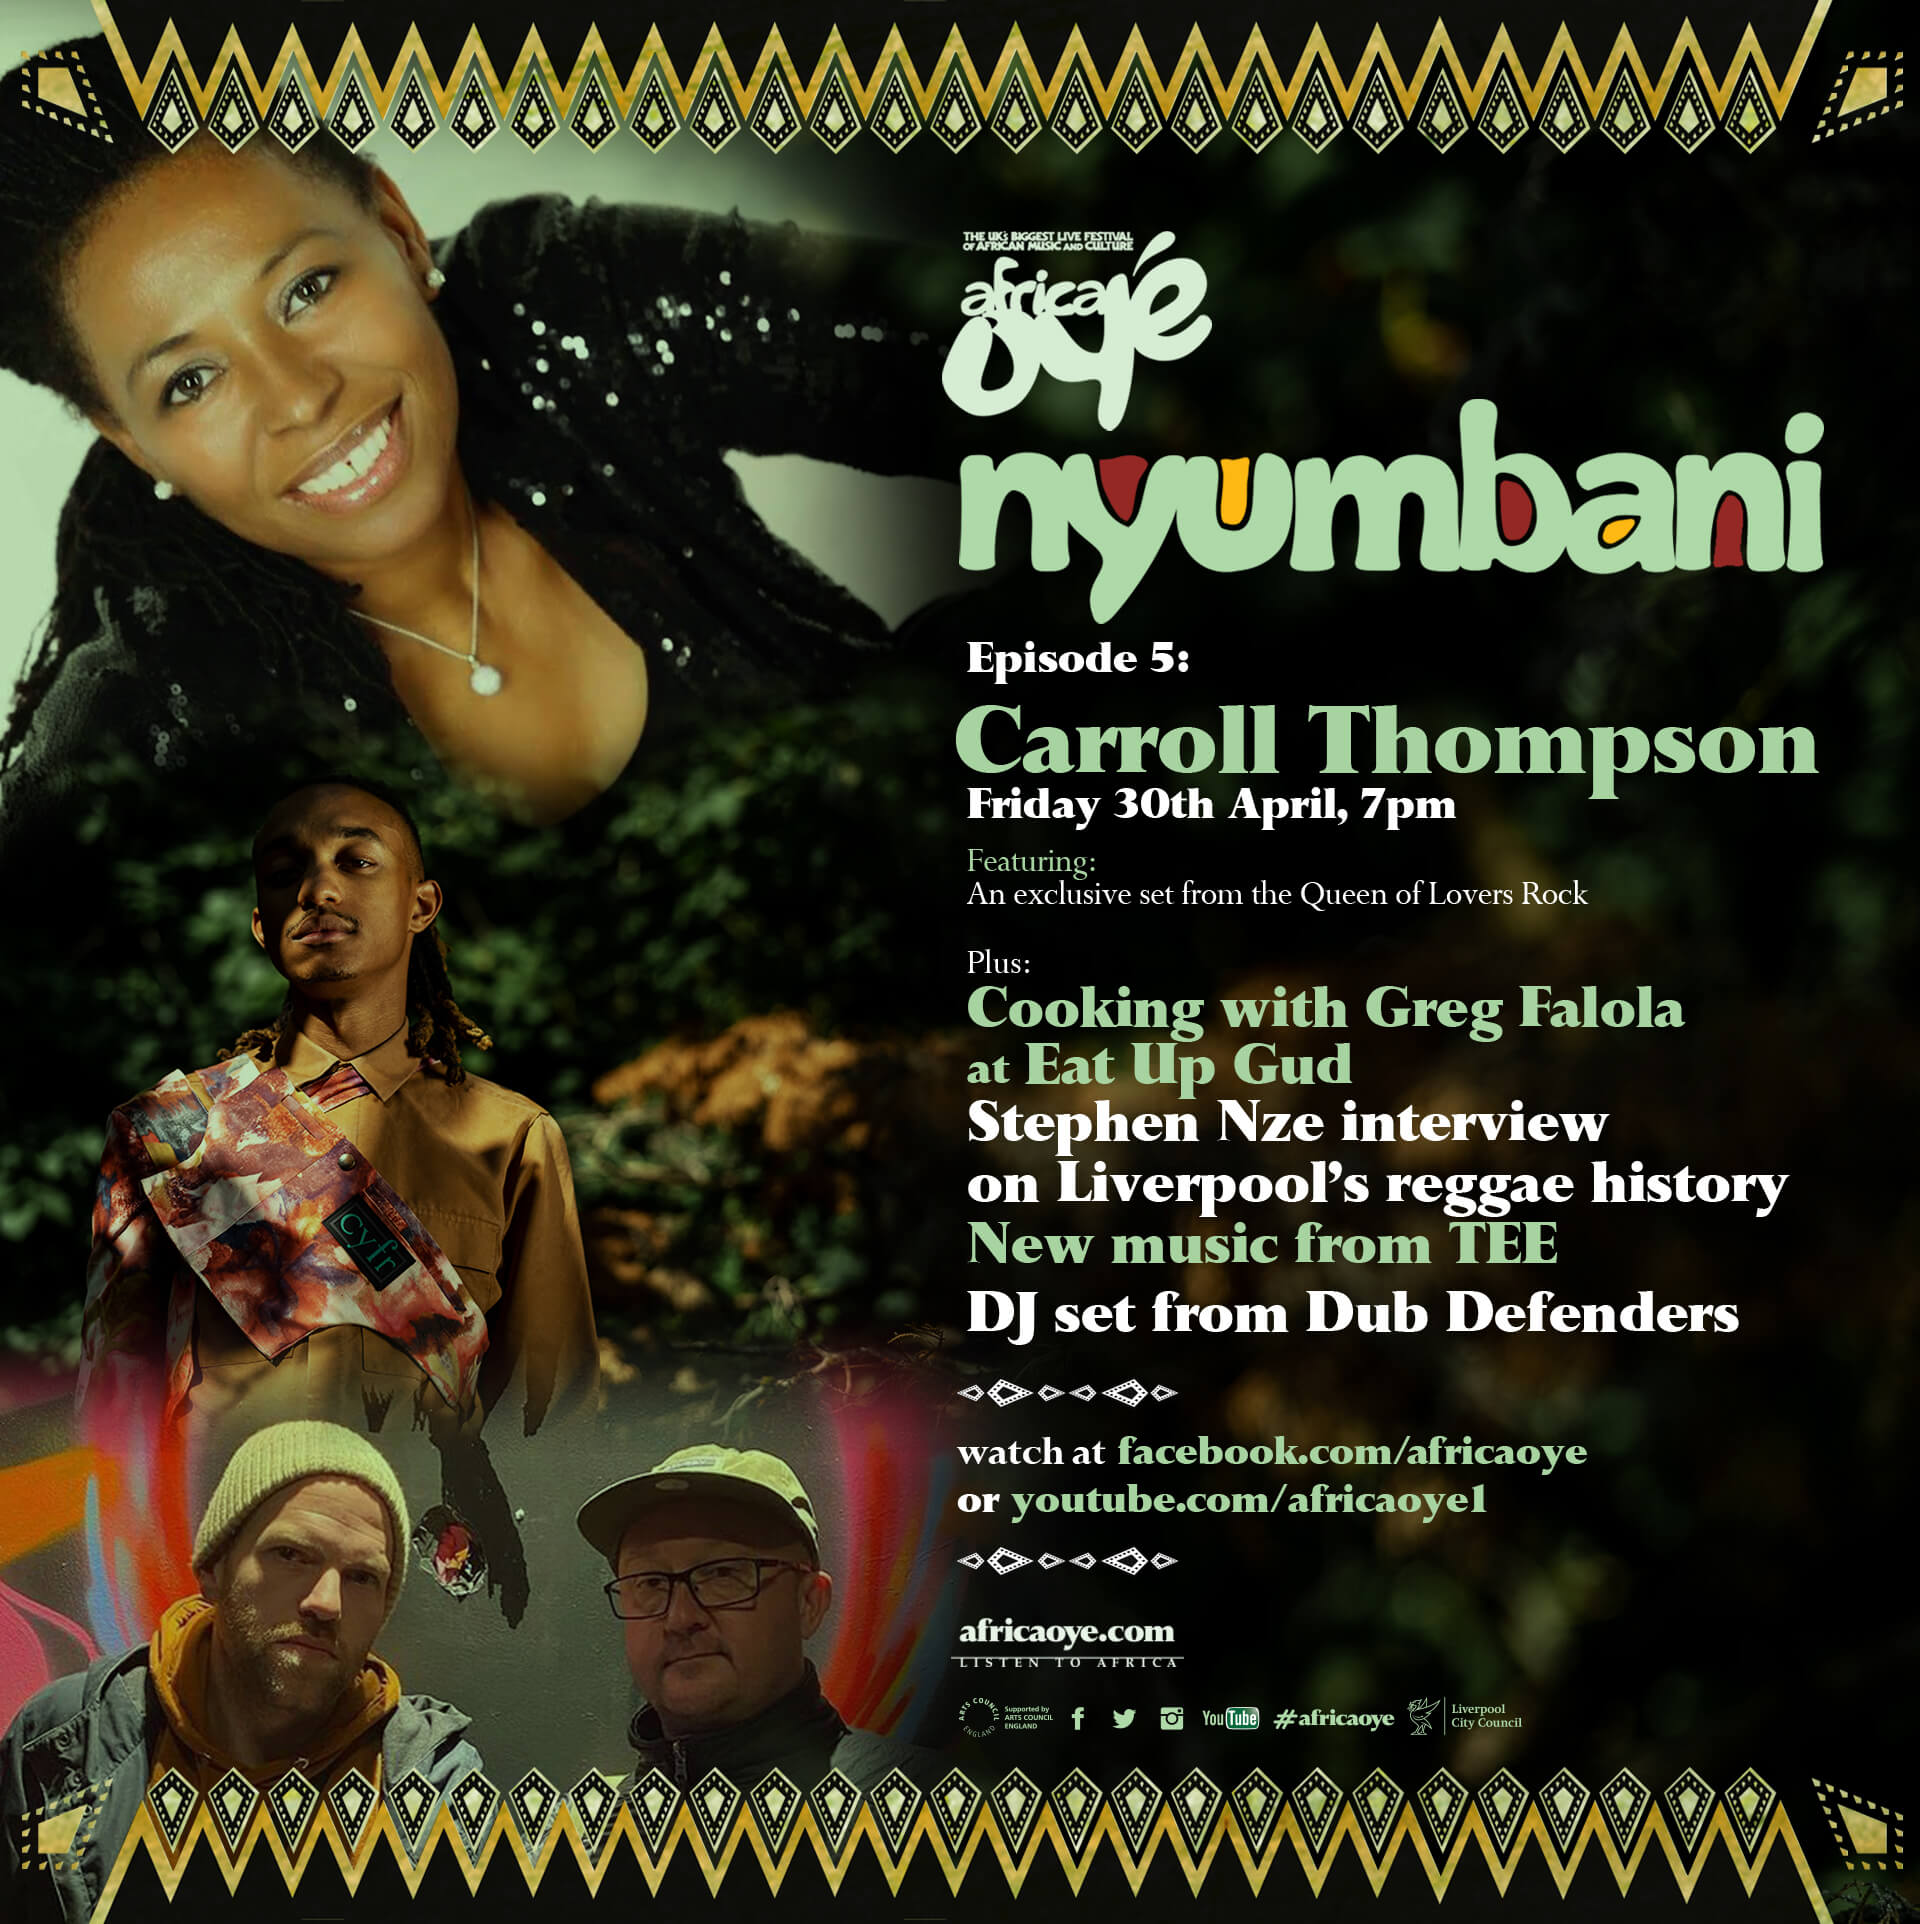 The poster for Episode of 5 of Nyumbani. Photos of Carroll Thompson, TEE and Dub Defenders.